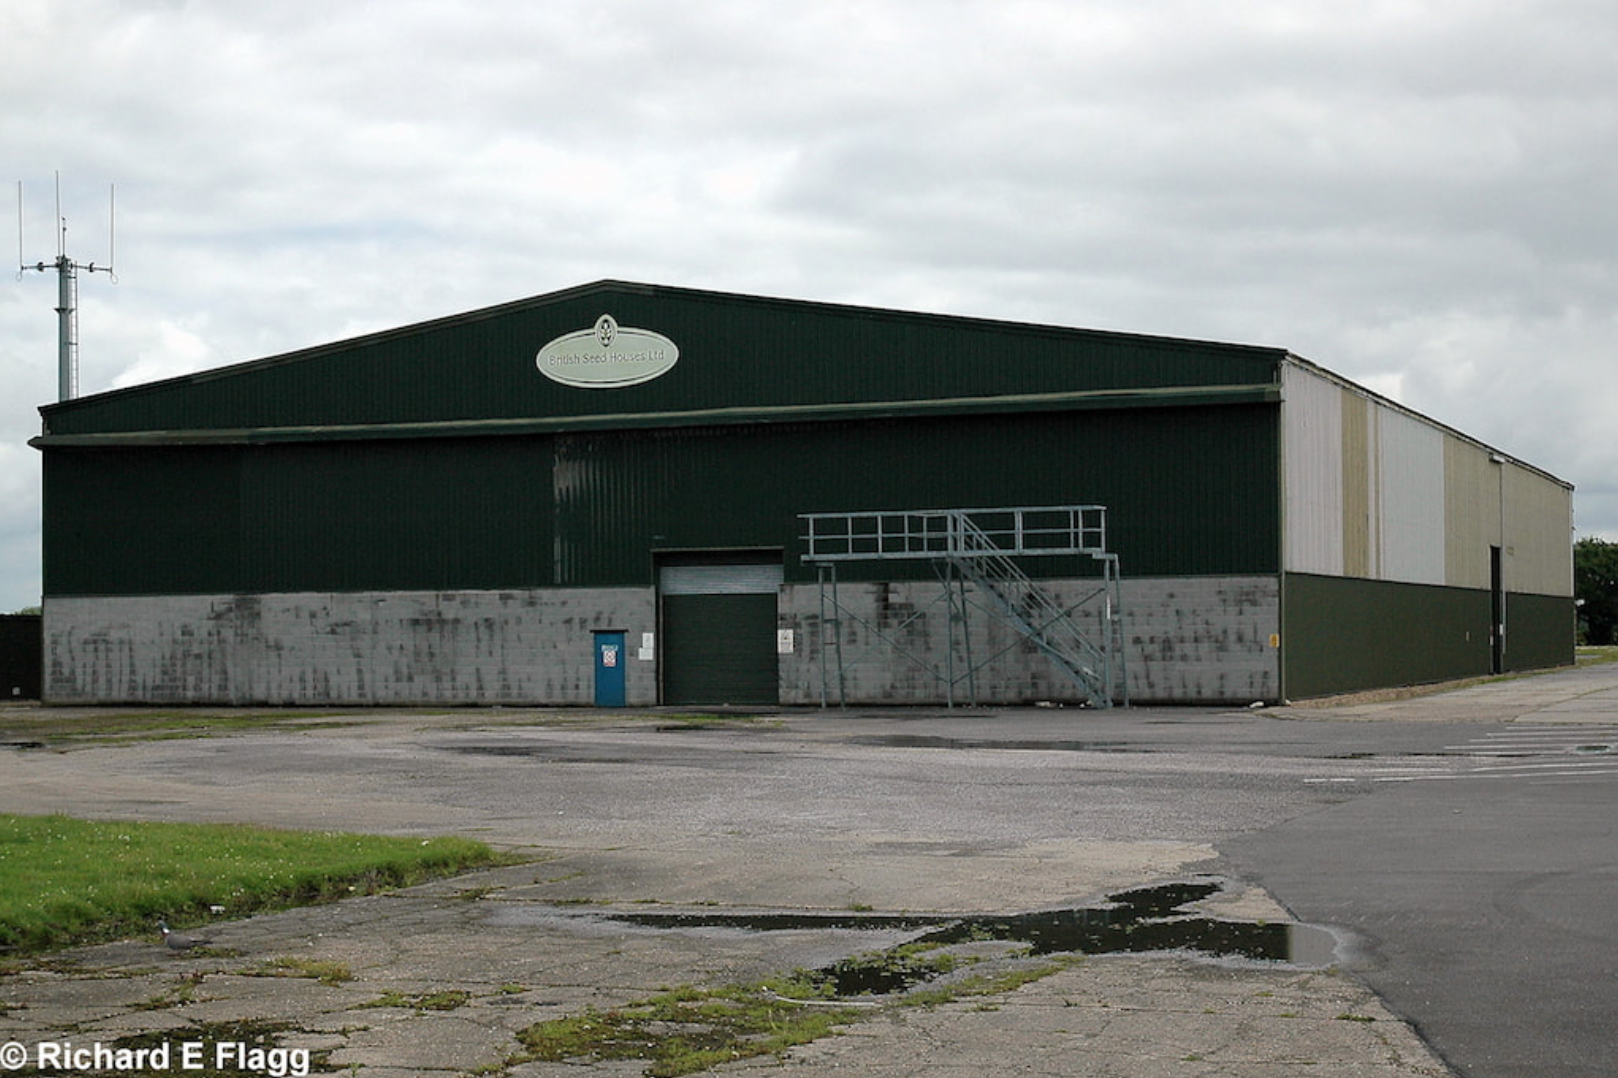 008Hangar : T2 Type Aircraft Shed - 1 July 2007.png